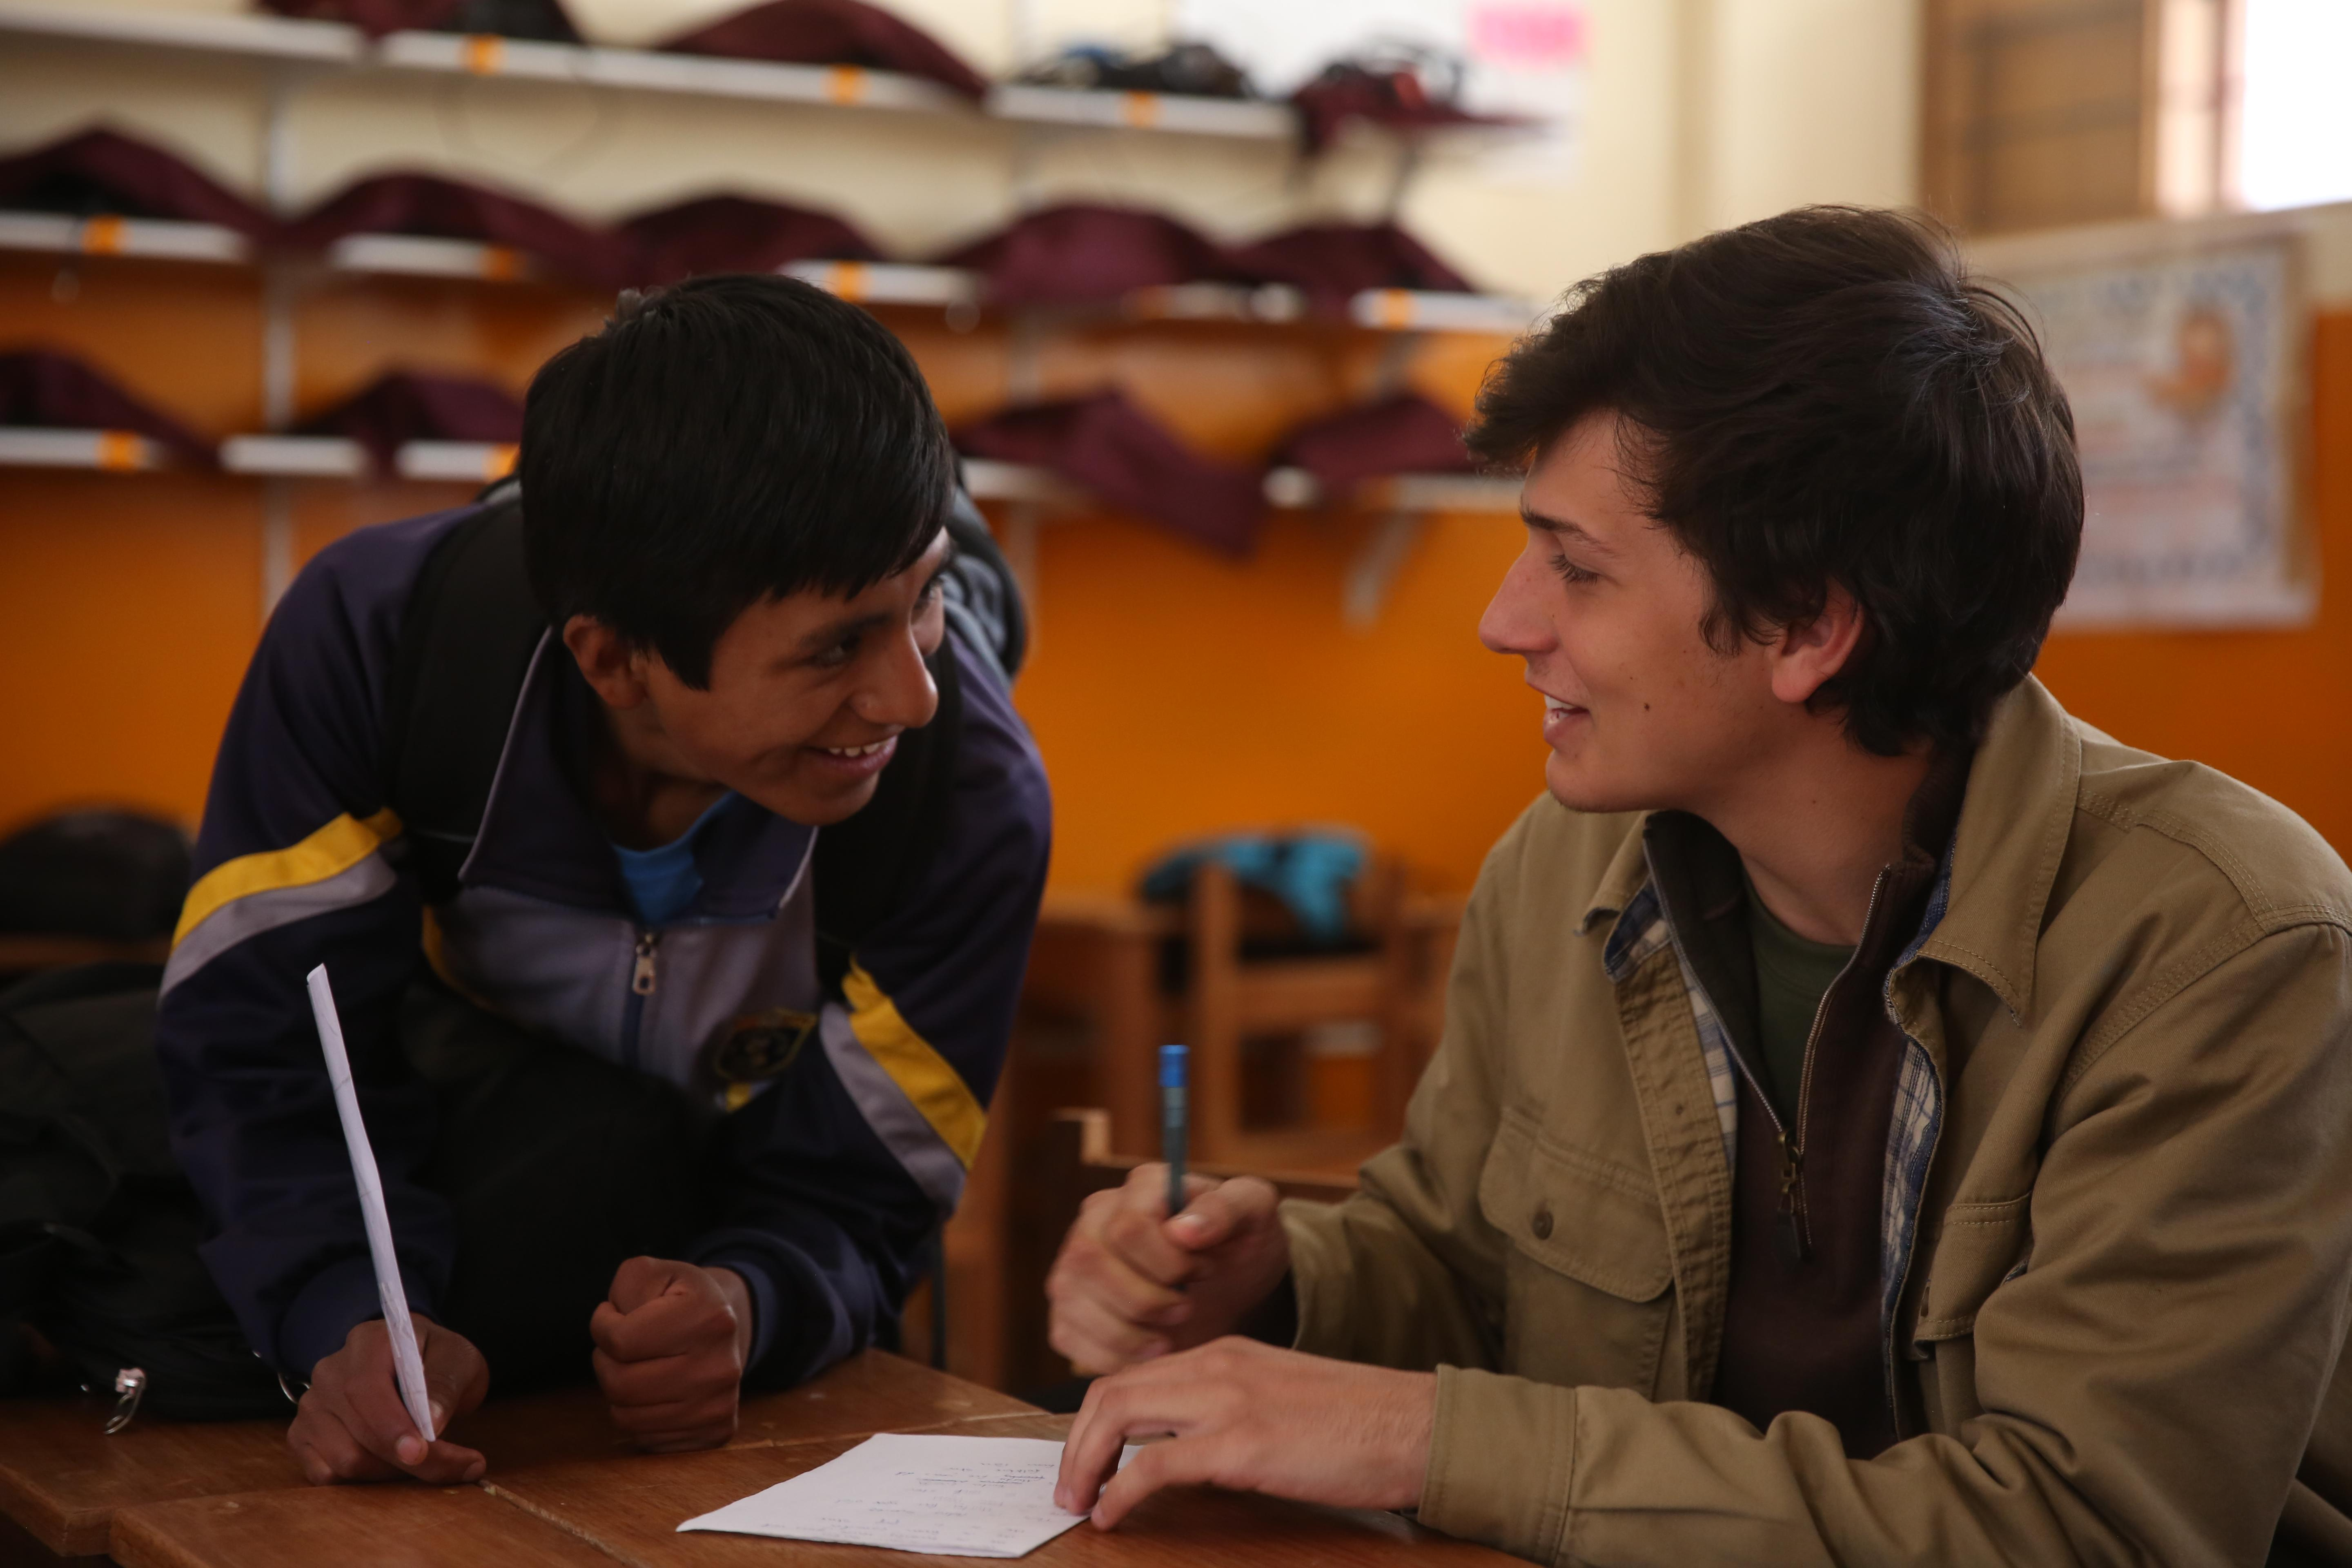 On the Spanish Language Course in Peru, a student also volunteers at a local school, teaching children.